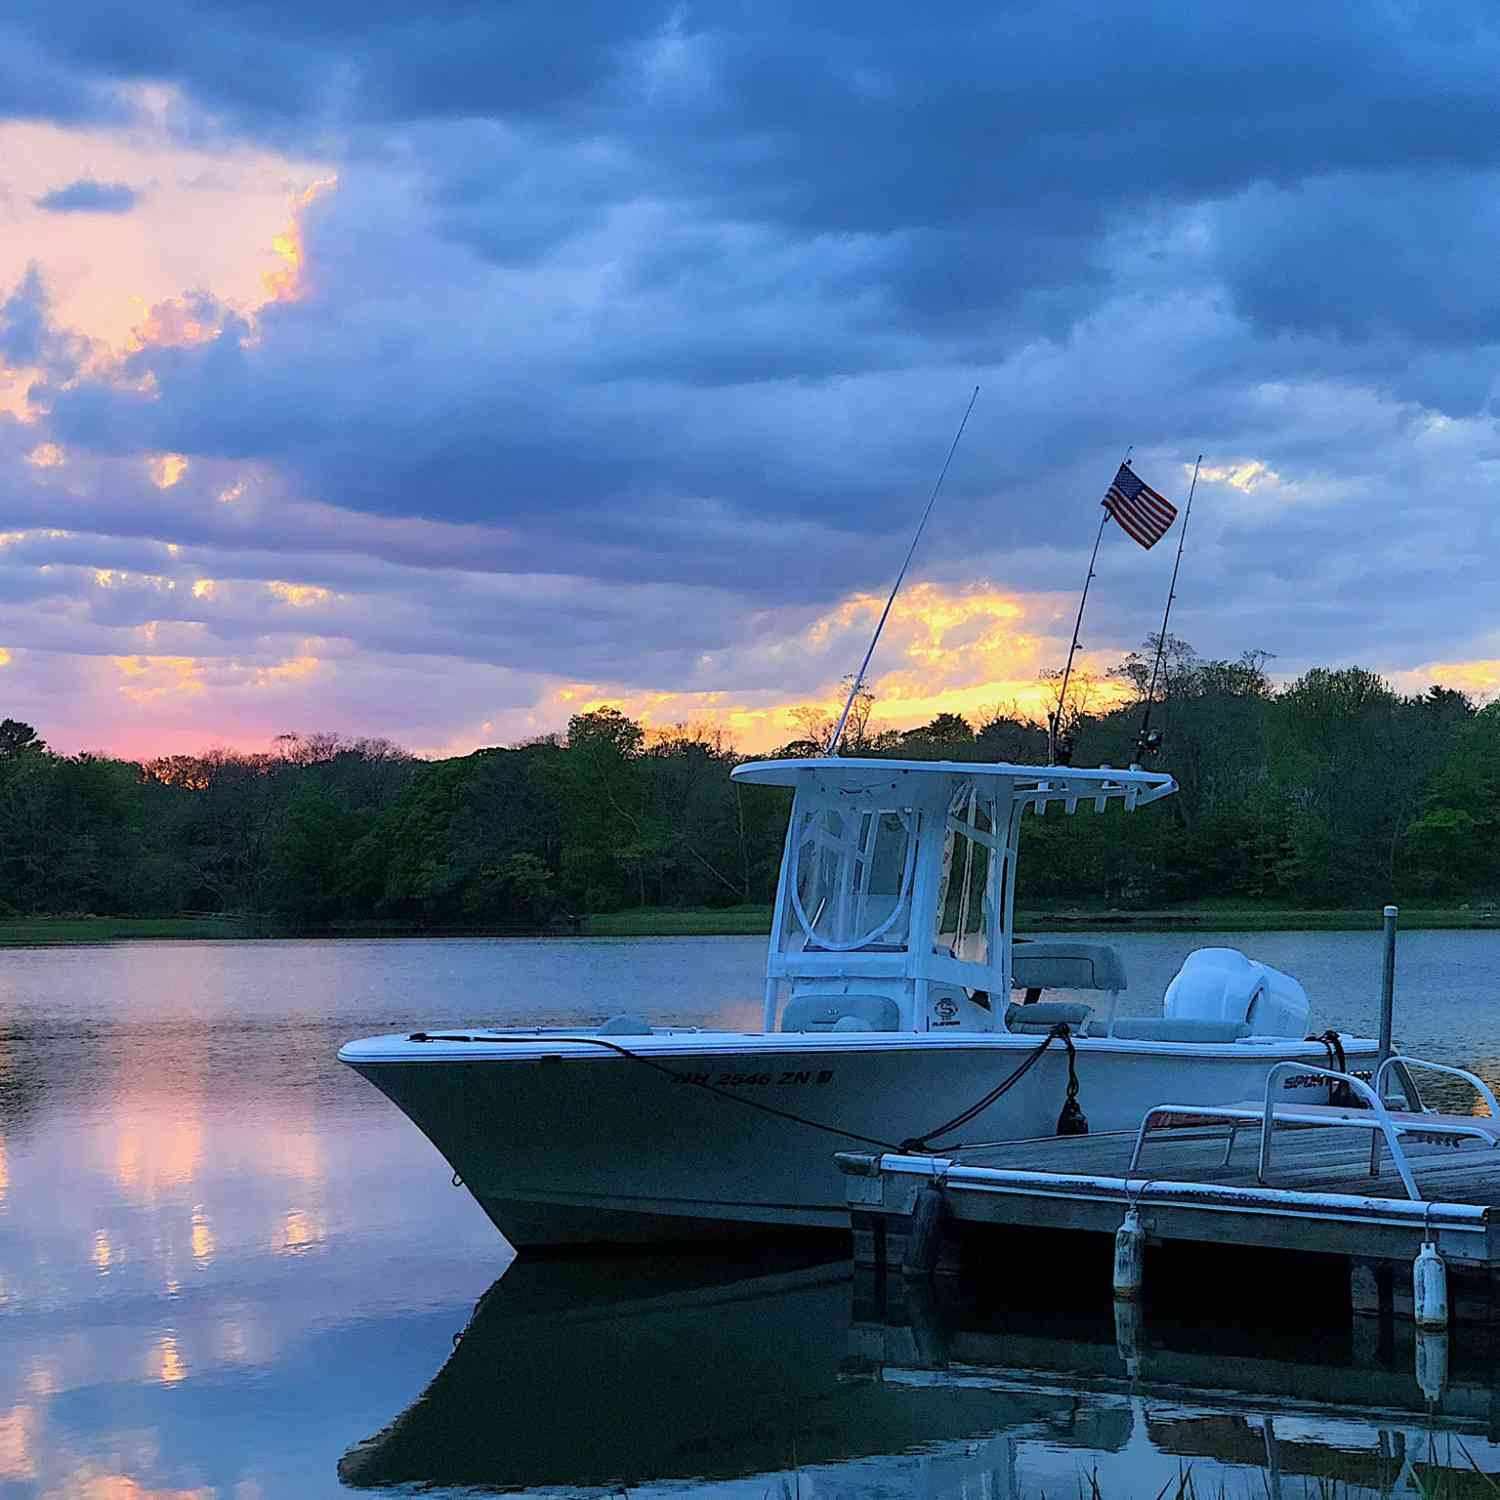 Title: Sportsman Sunset - On board their Sportsman Open 232 Center Console - Location: Gloucester, Massachusetts. Participating in the Photo Contest #SportsmanFebruary2021